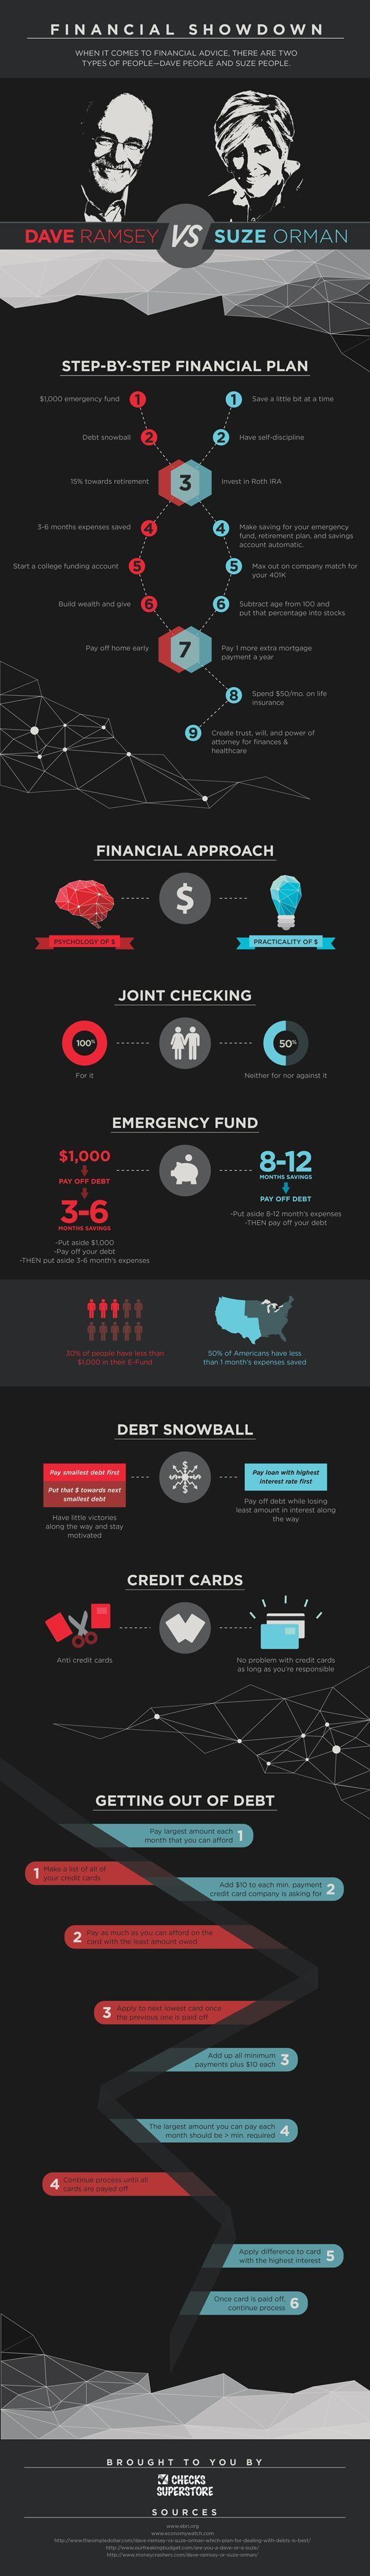 Suze Orman v Dave Ramsey: Two money management and debt reduction strategies compared.